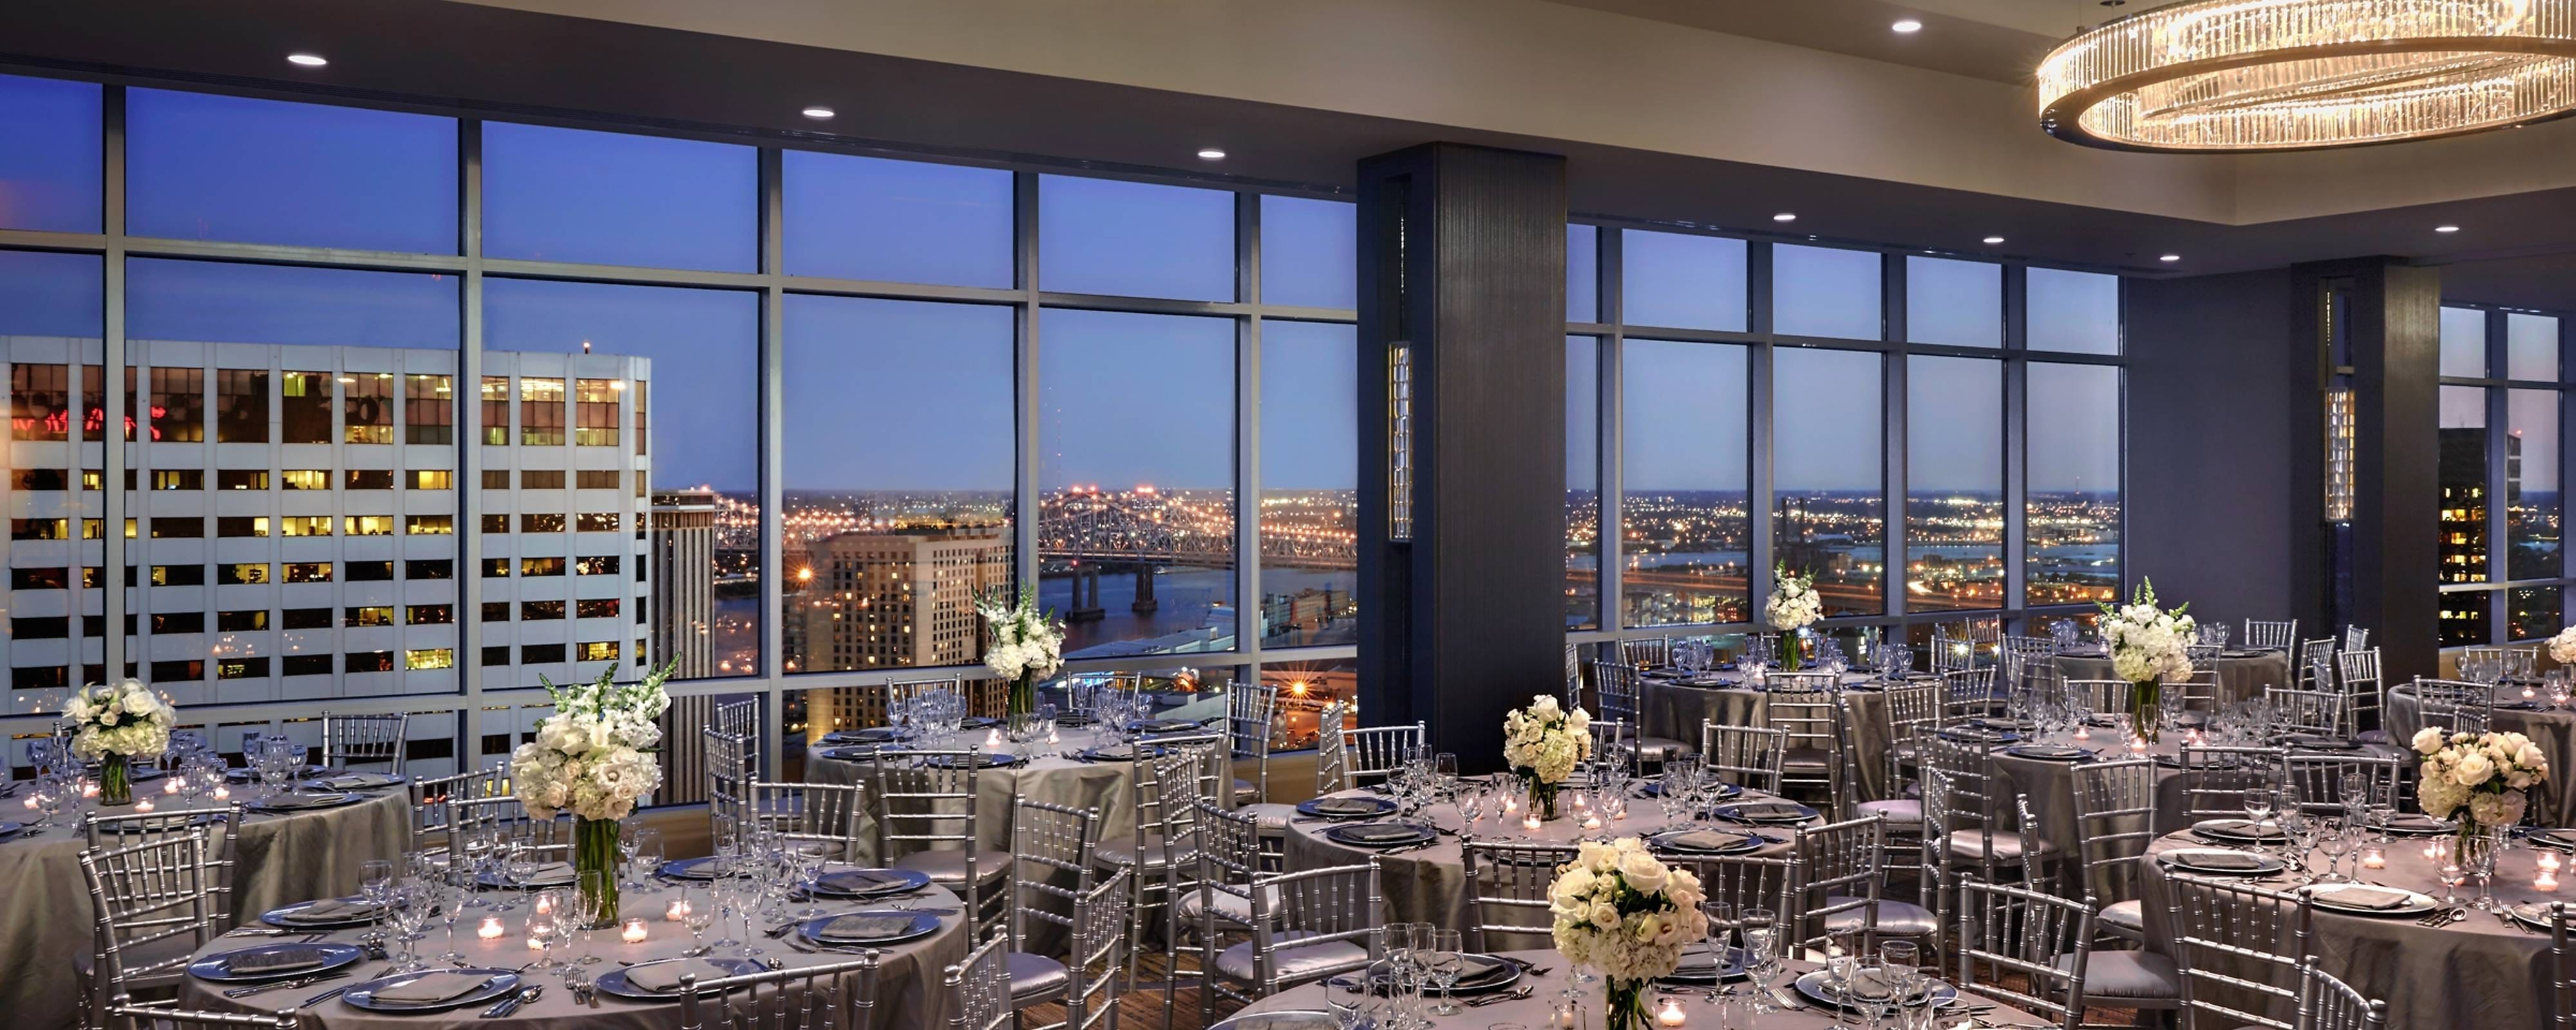 Wedding Venues In New Orleans French Quarter New Orleans Marriott